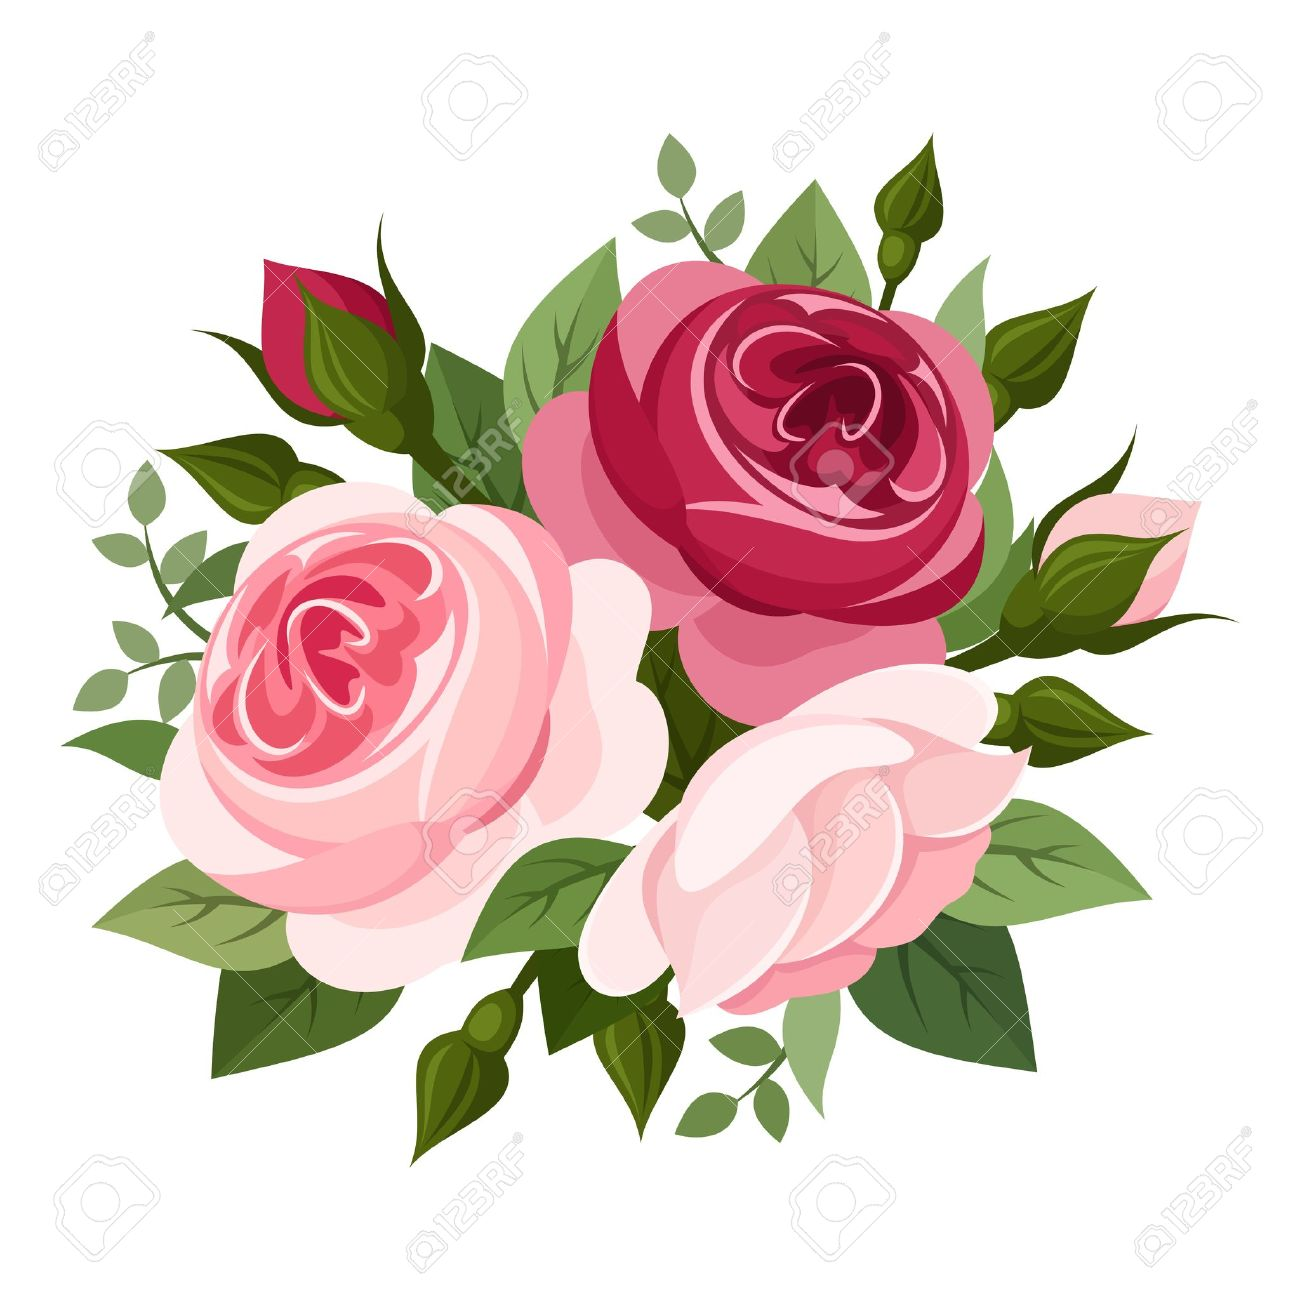 Red And Pink Roses Vector Illustration Royalty Free Cliparts